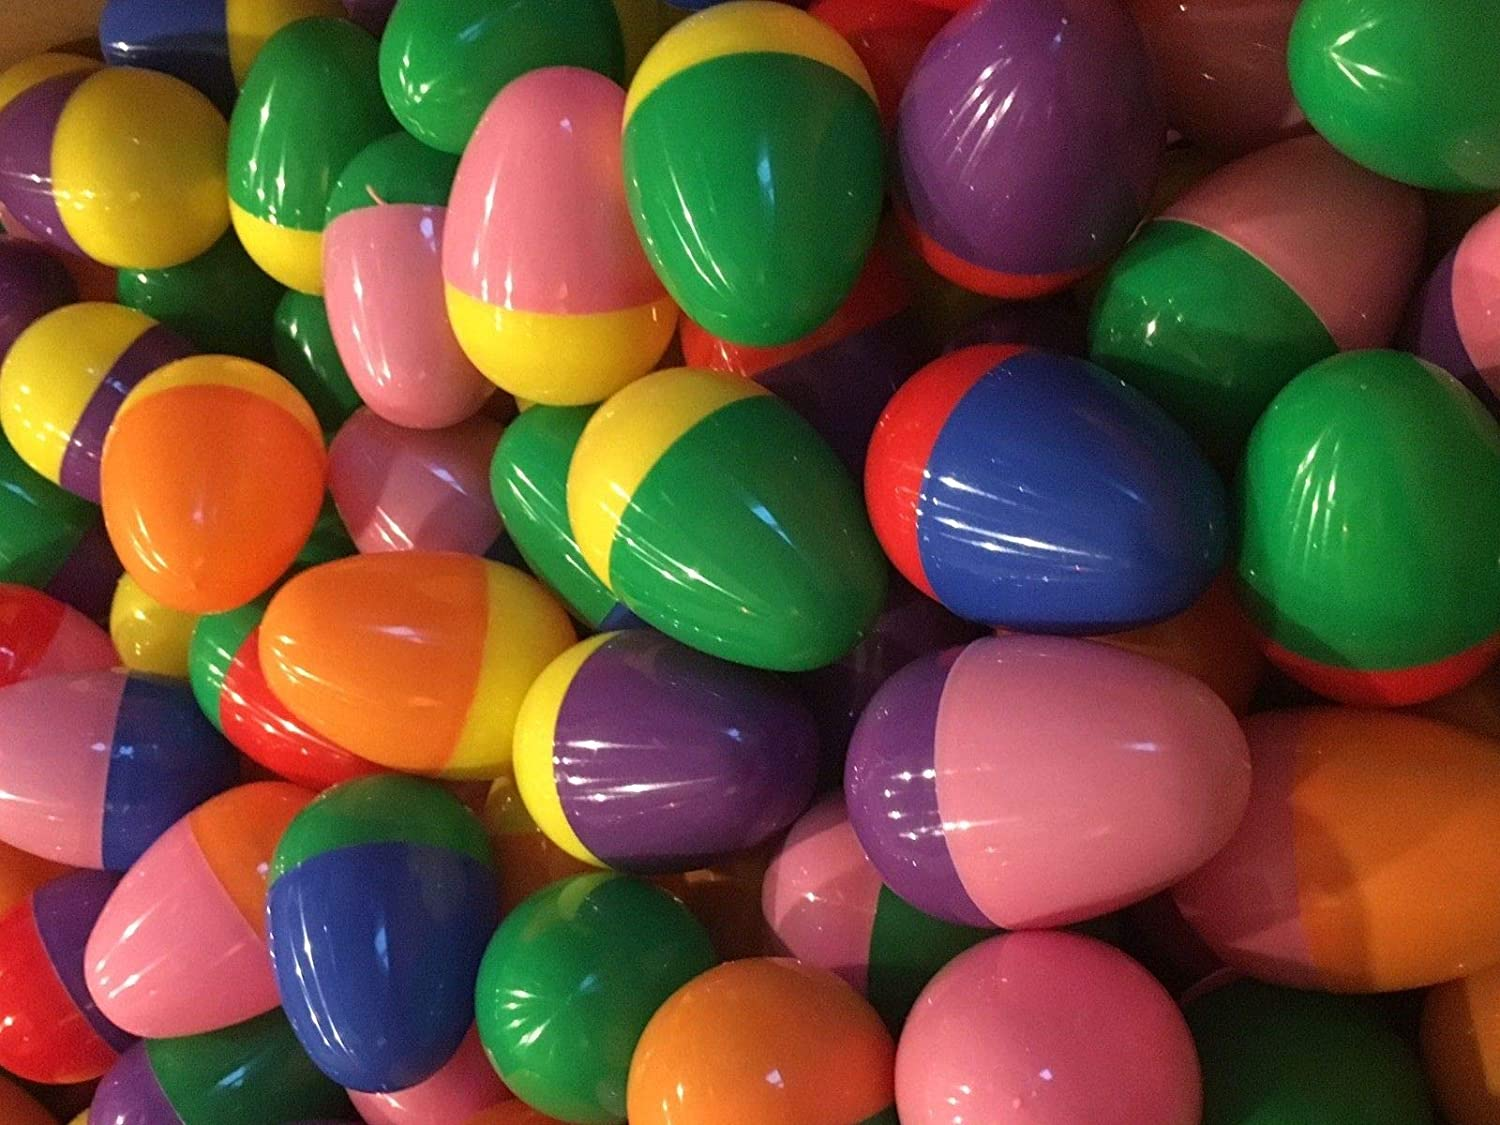 100 Thick Plastic Easter Eggs with Toys Reusable Egg Party Prizes or Vending Machine Toy Mix